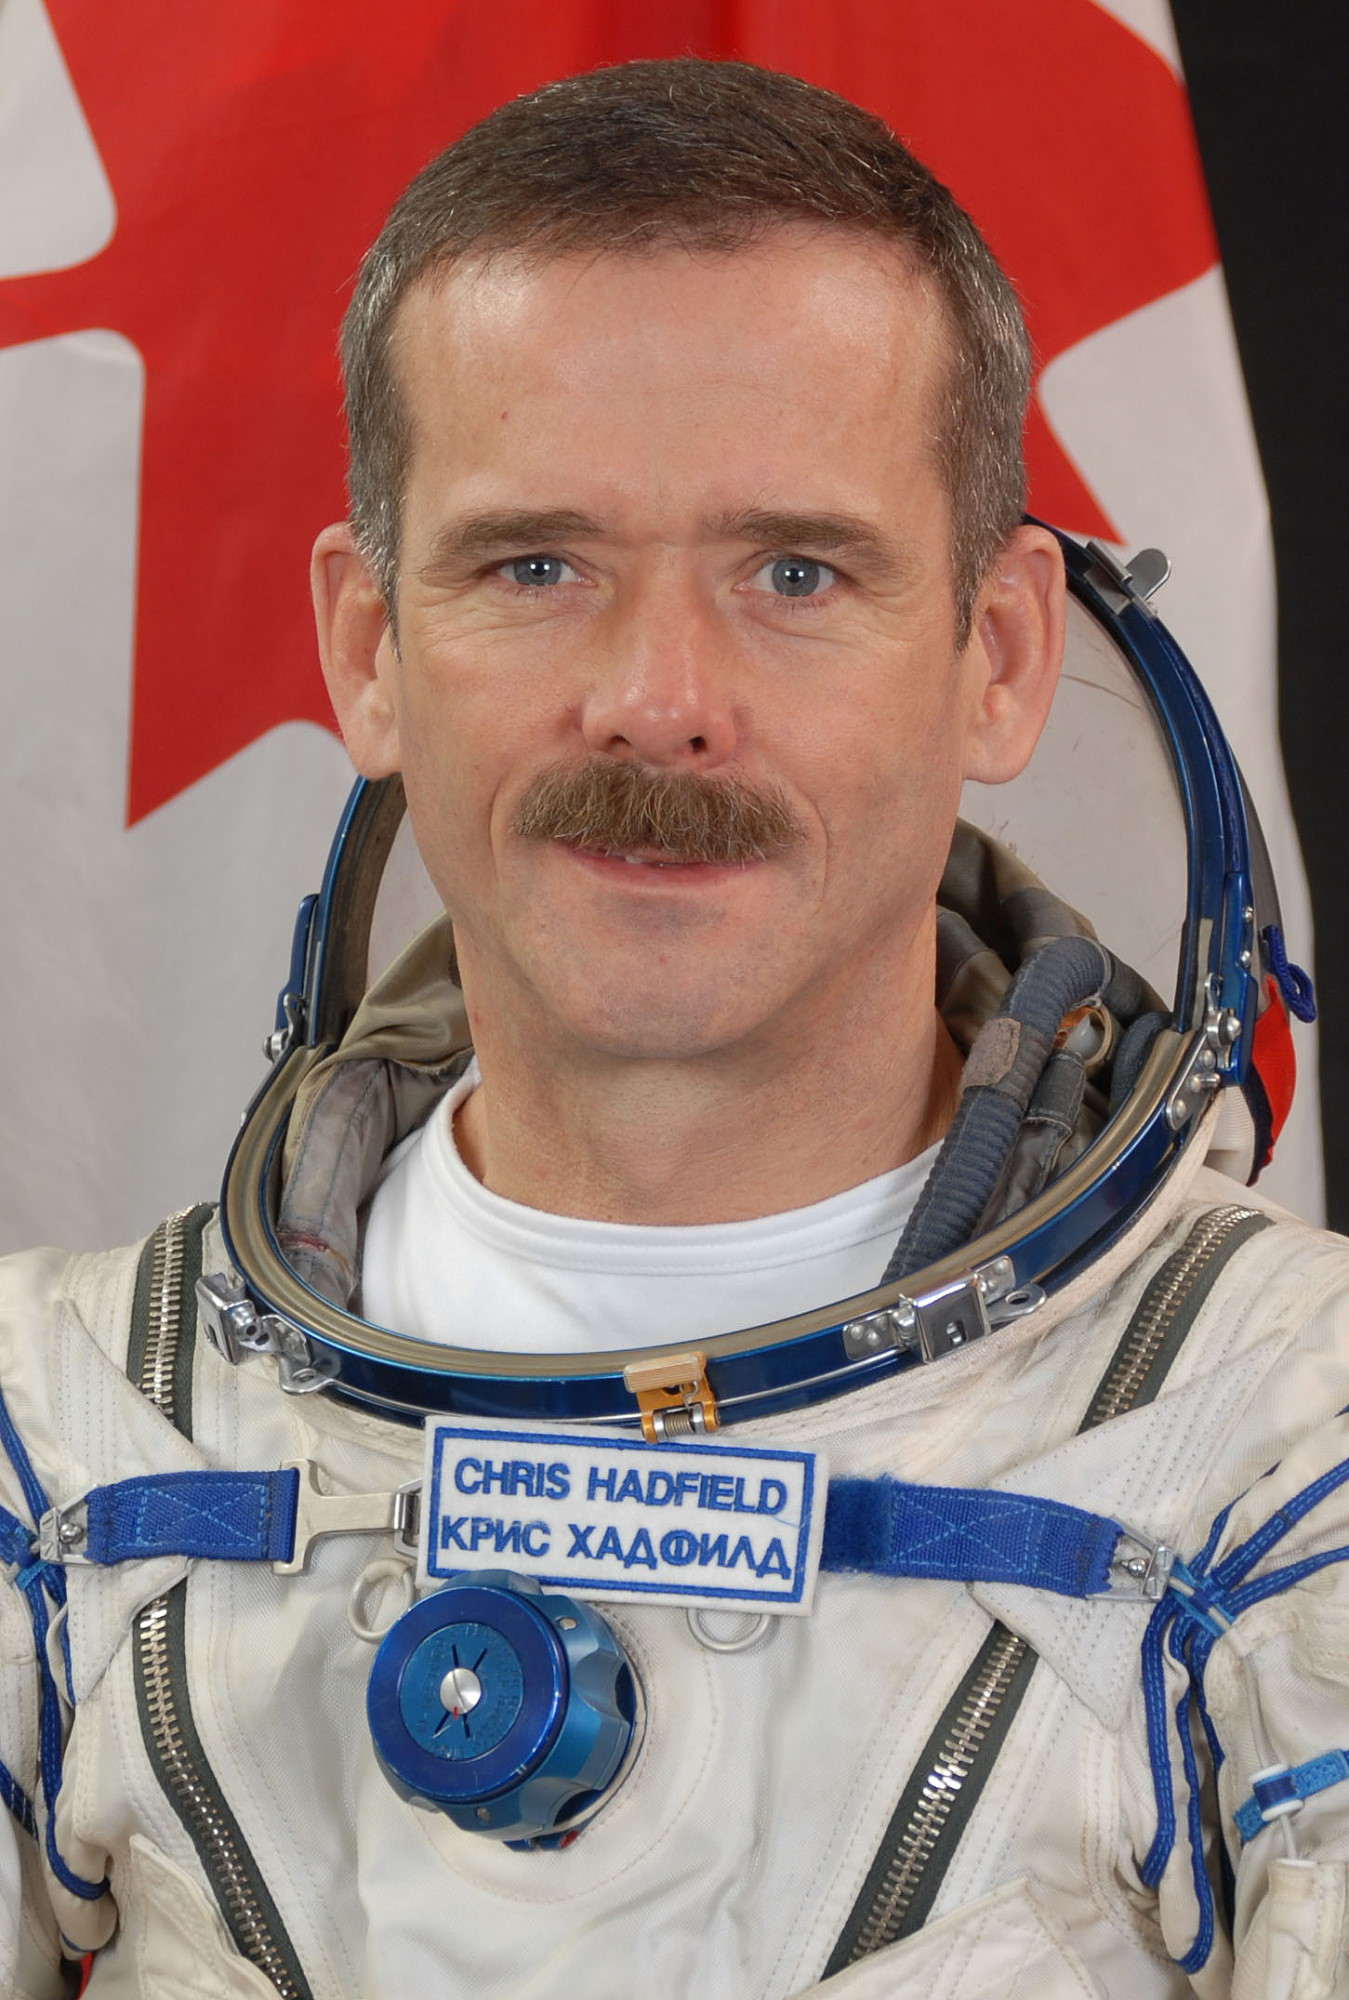 Chis hadfield